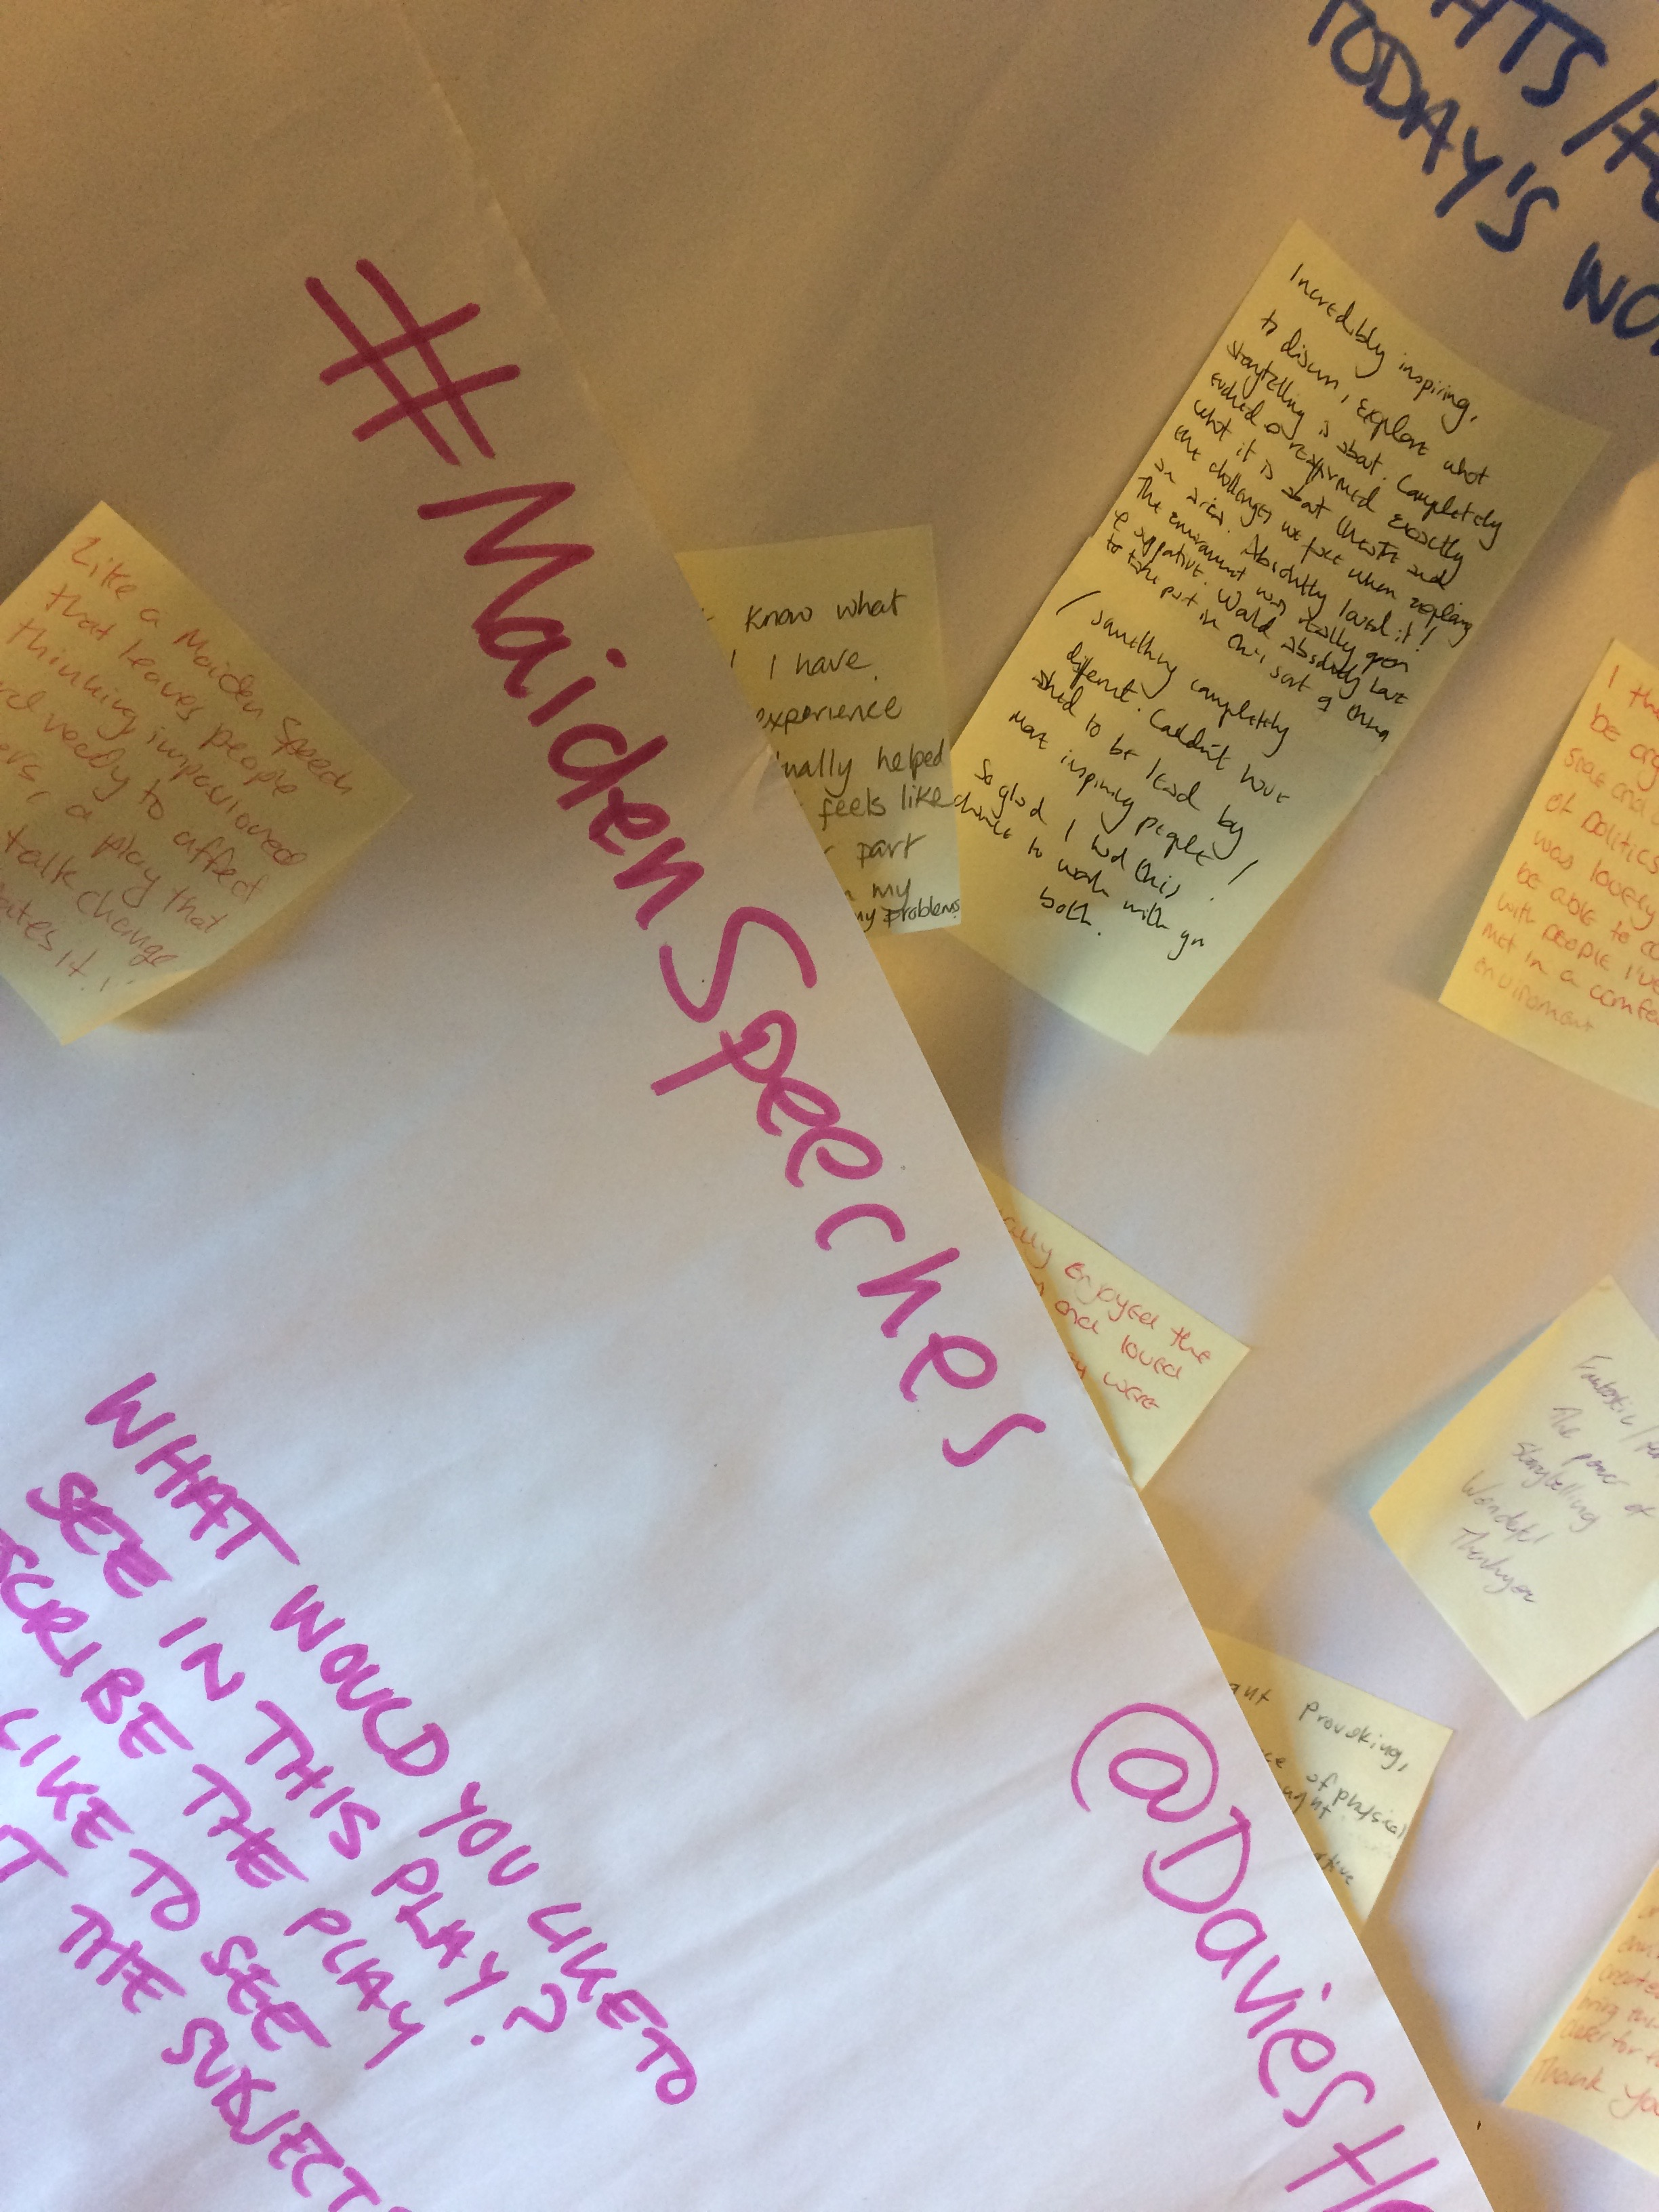 Some of the responses to questions posed in our workshop at York Theatre Royal in October.